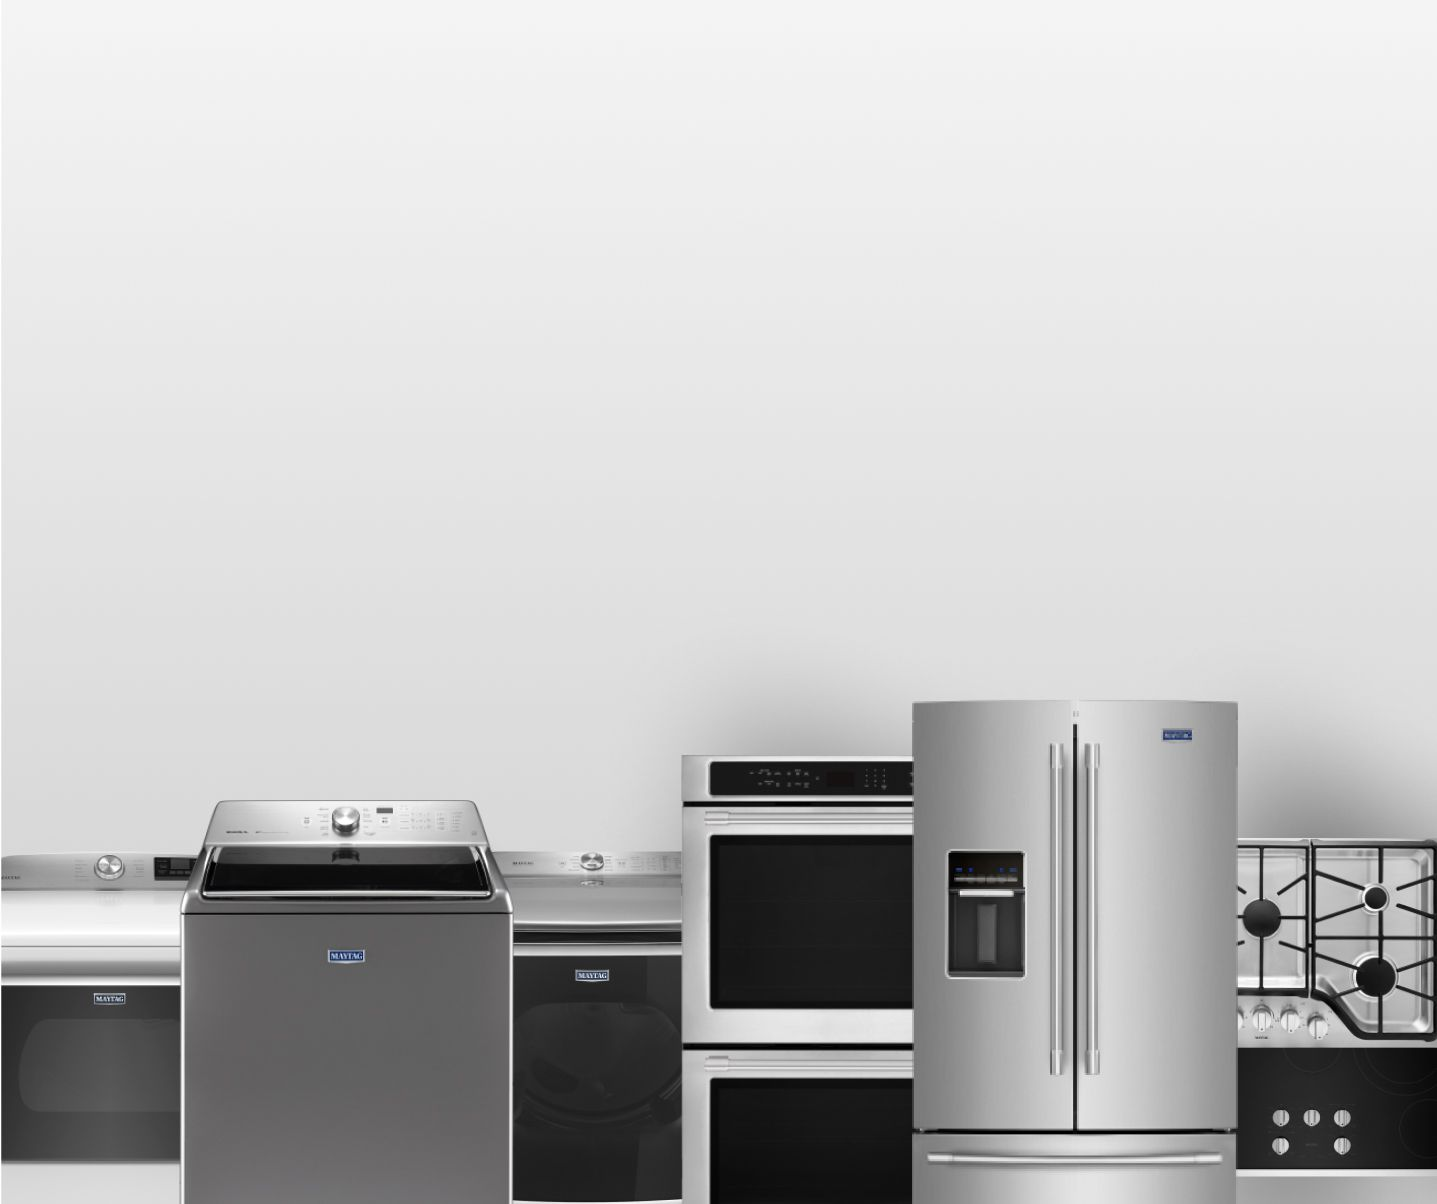 A laundry room arranged with a Whirlpool® washer and dryer.